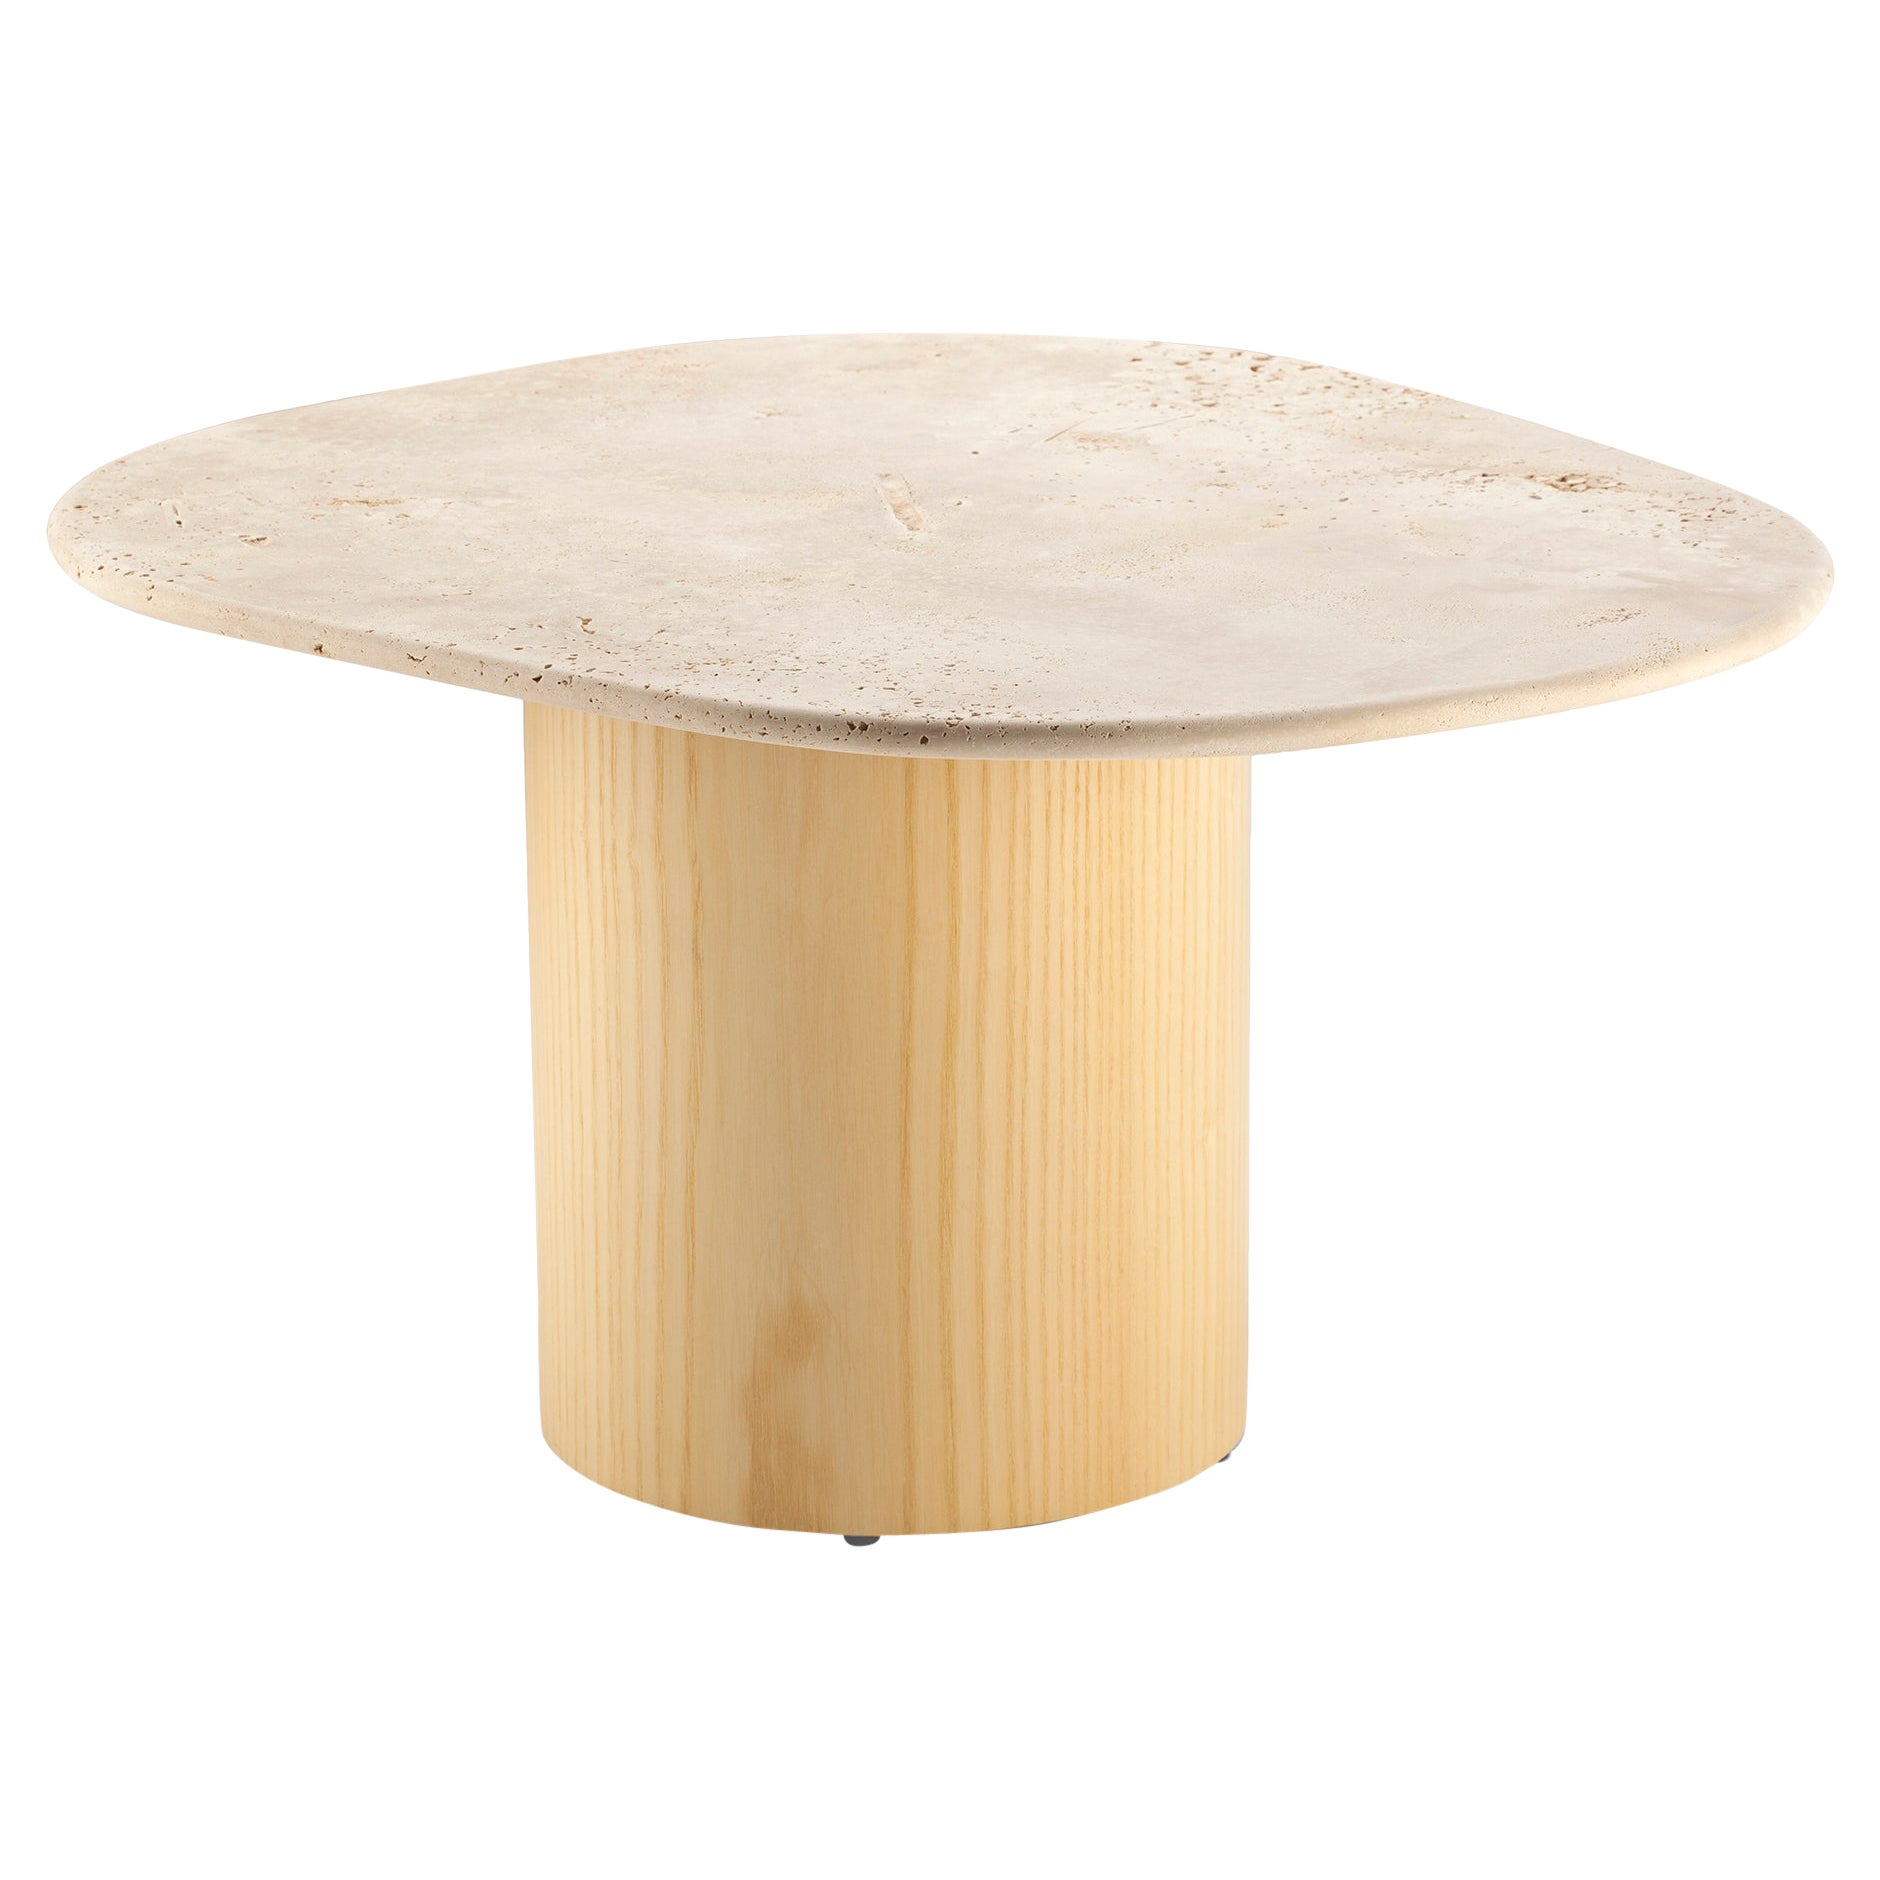 Organic Modern Travertine and Natural Ash Portuguese Side Table L'anamour